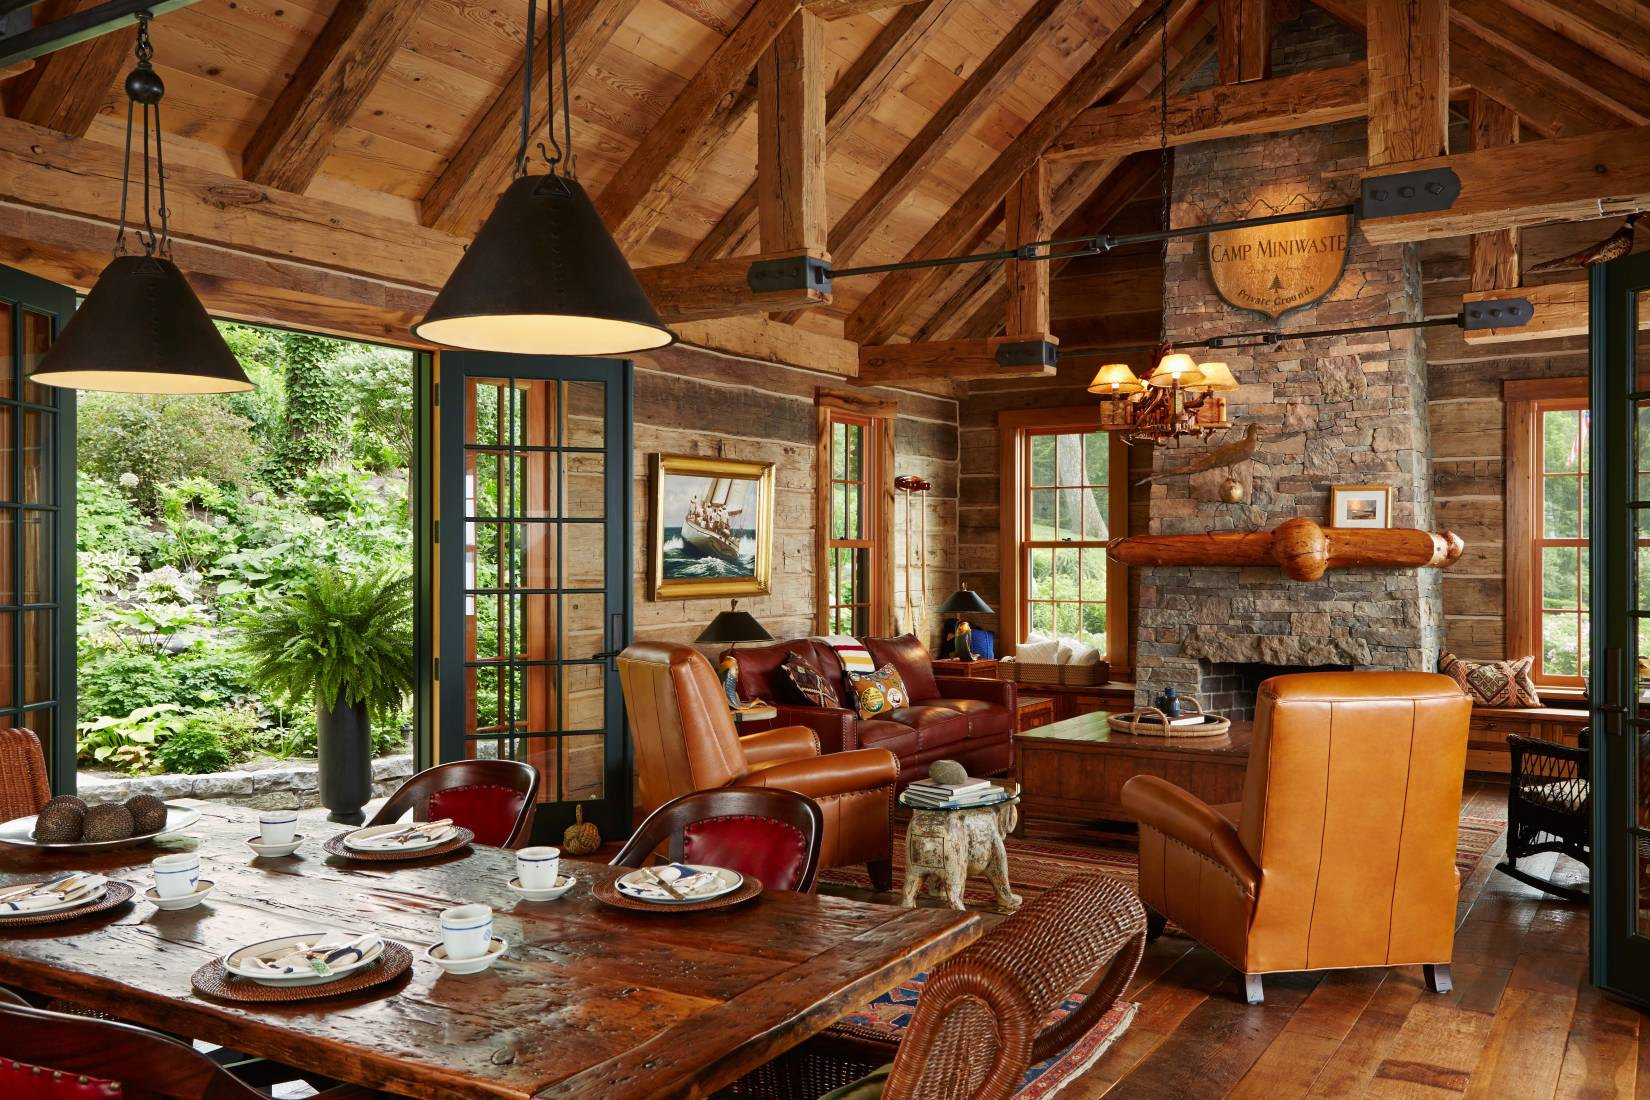 Terrific The Boathouse Murphy Co Design Largest Home Design Picture Inspirations Pitcheantrous